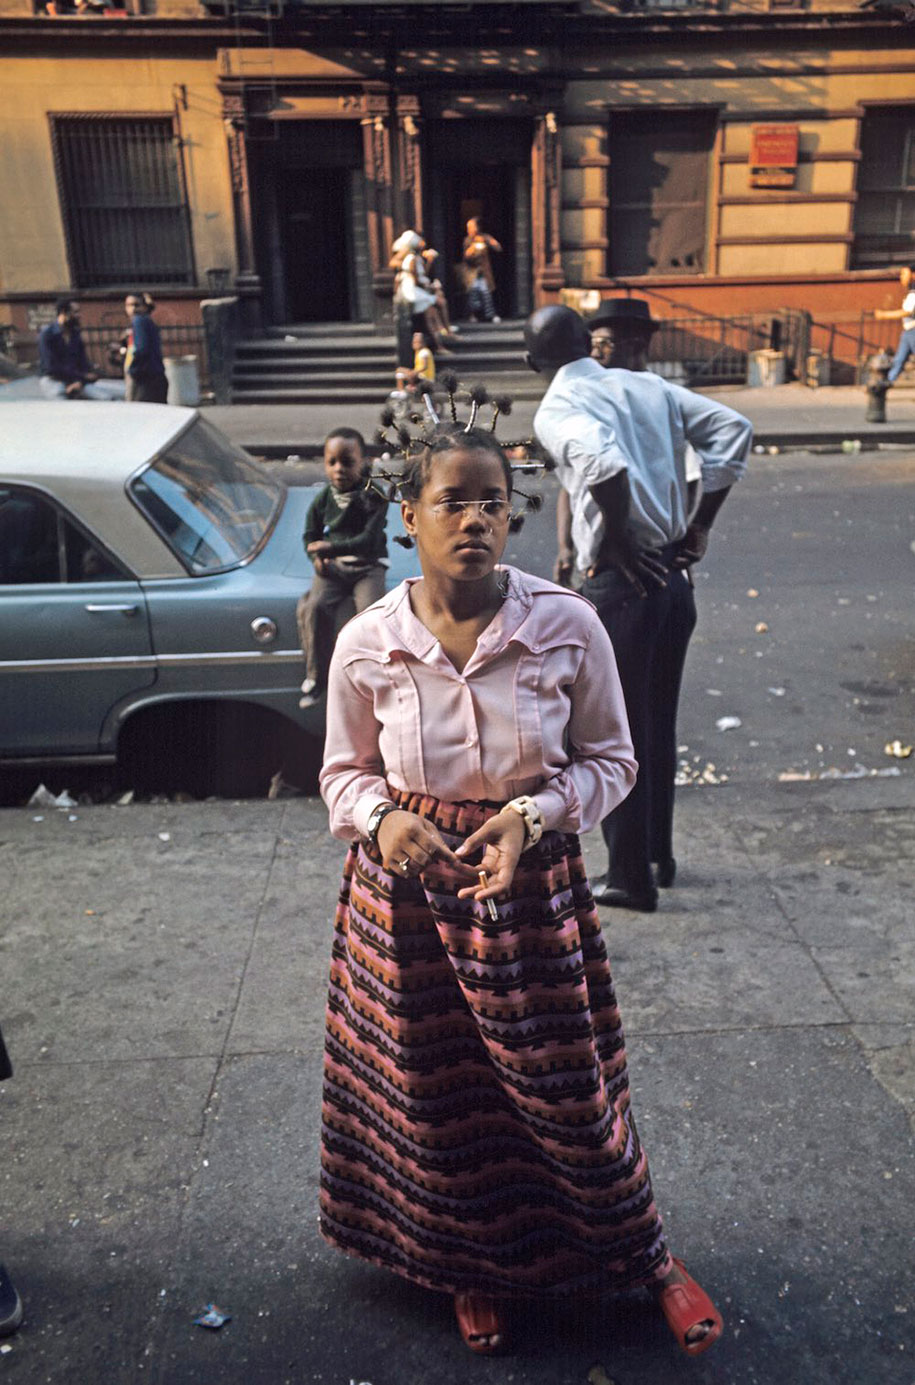 people-living-harlem-ghetto-july-1970-jack-garofalo-15